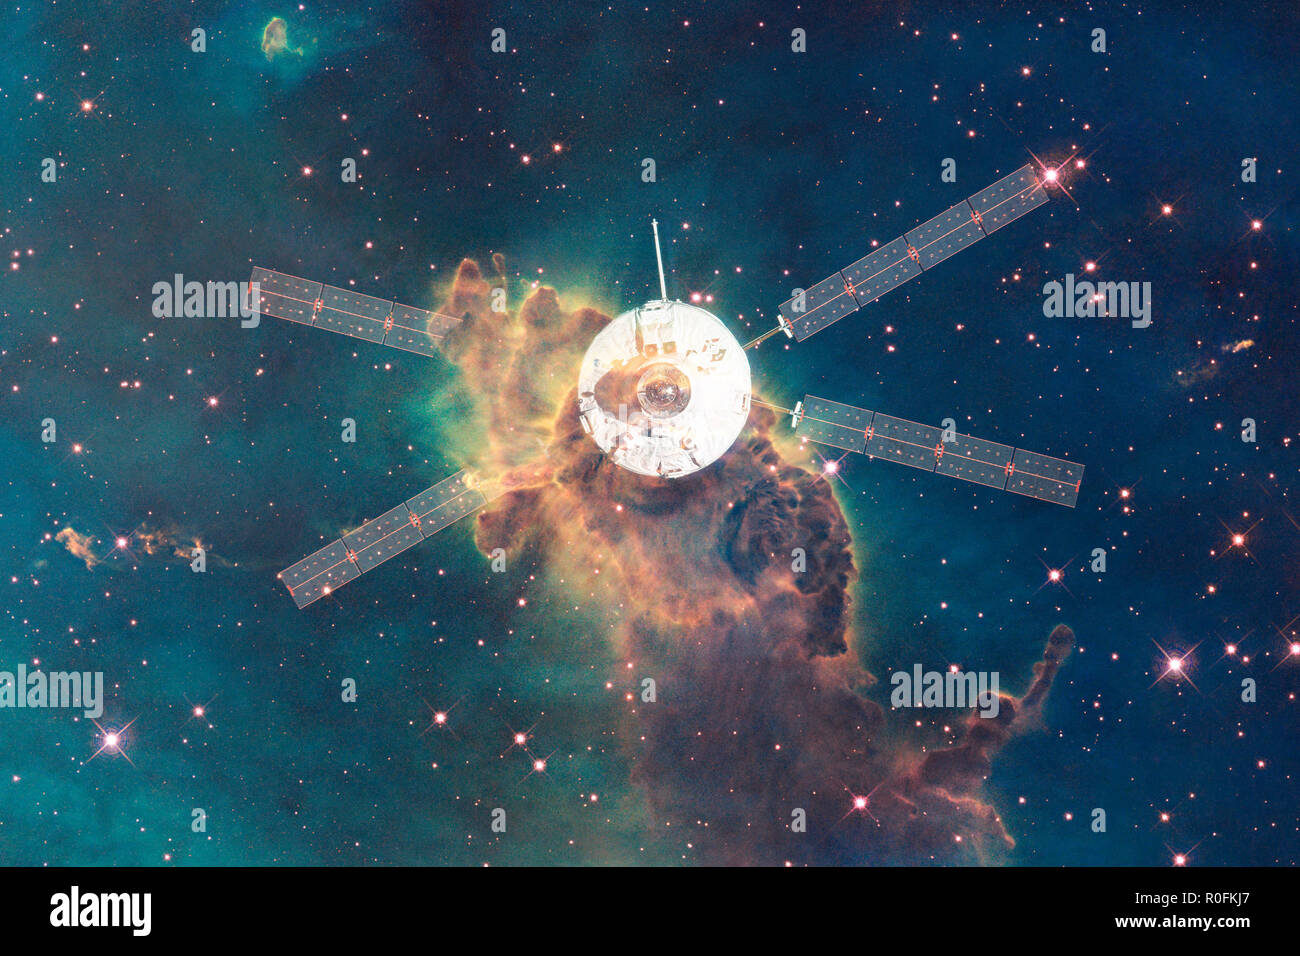 Spacecraft launch into space. Beauty of outer space. Billions of galaxies in the universe. Elements of this image furnished by NASA - Stock Image